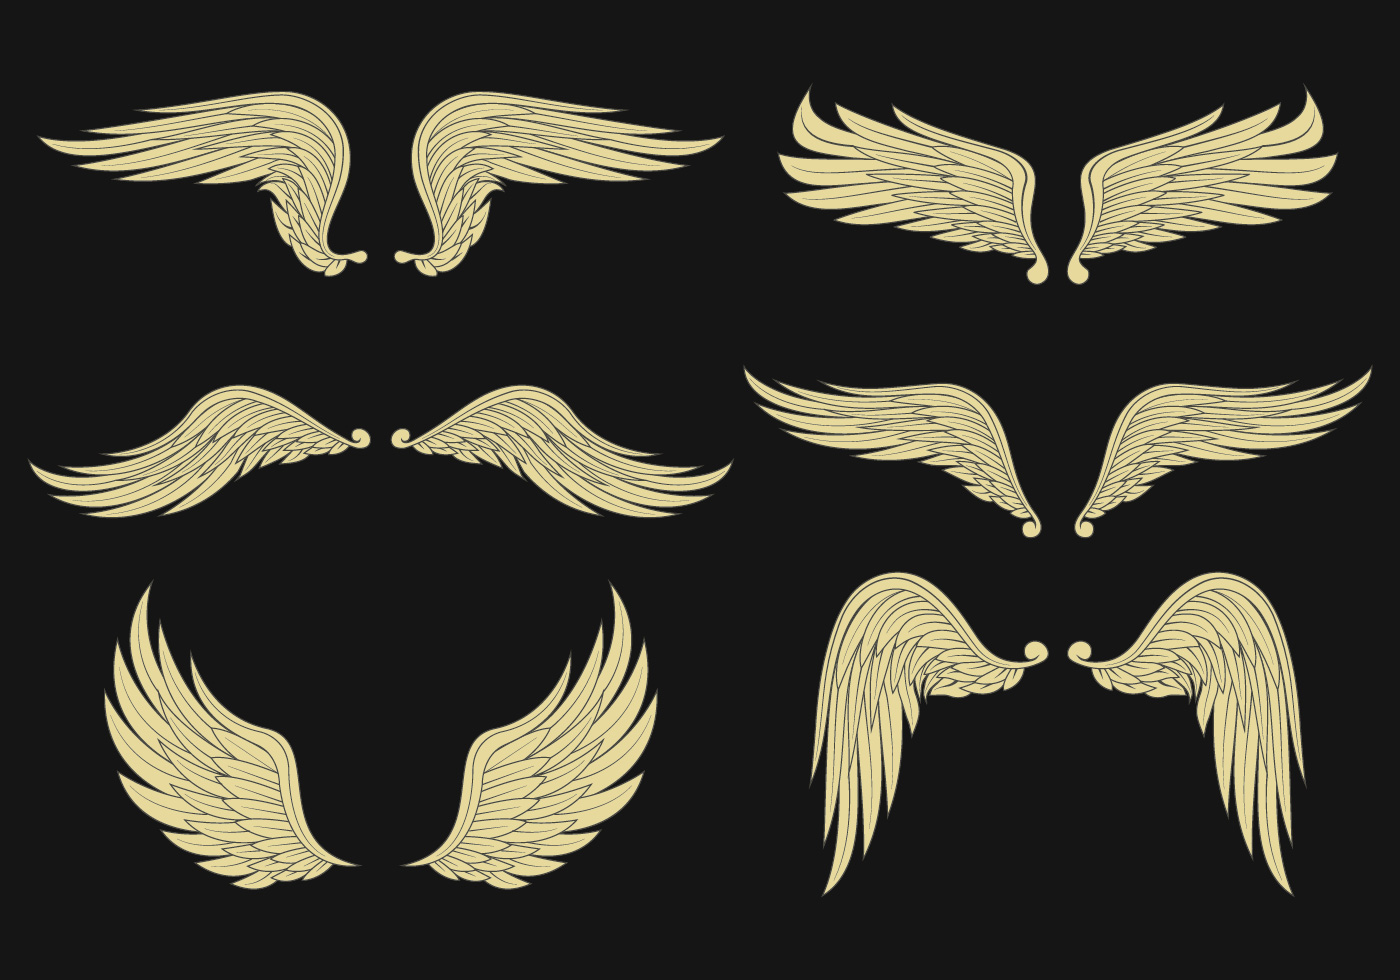 angel wings vector set download free vector art  stock angel wing vector images angel wing vector free download